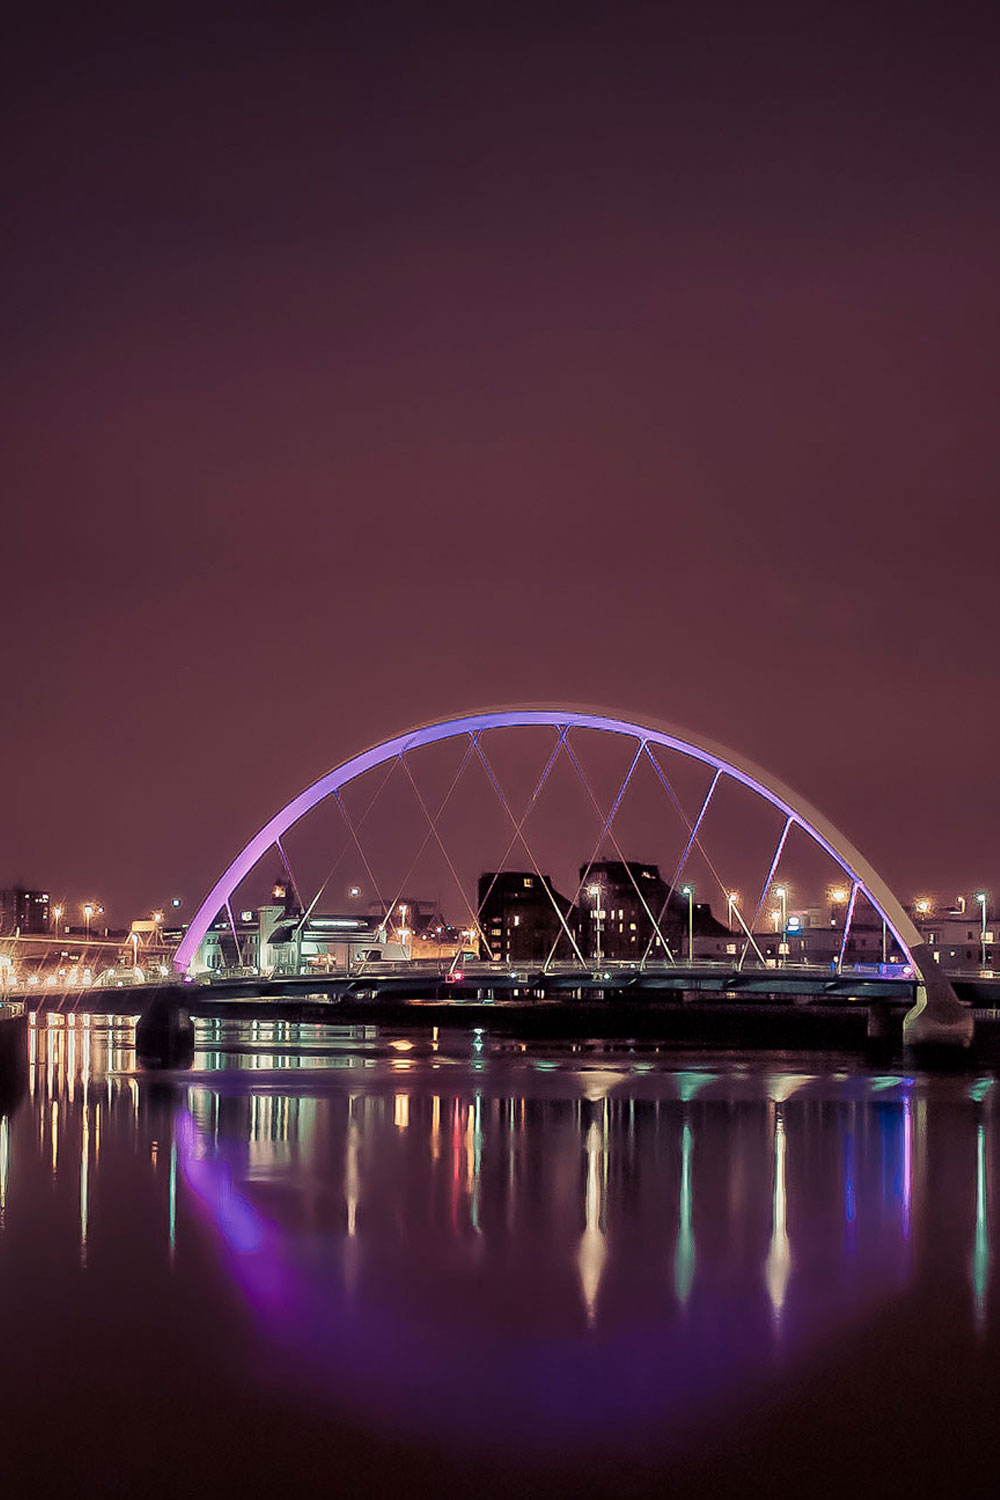 nighttime view of the Clyde Arc with colored lights reflected in the river, in Glasgow.